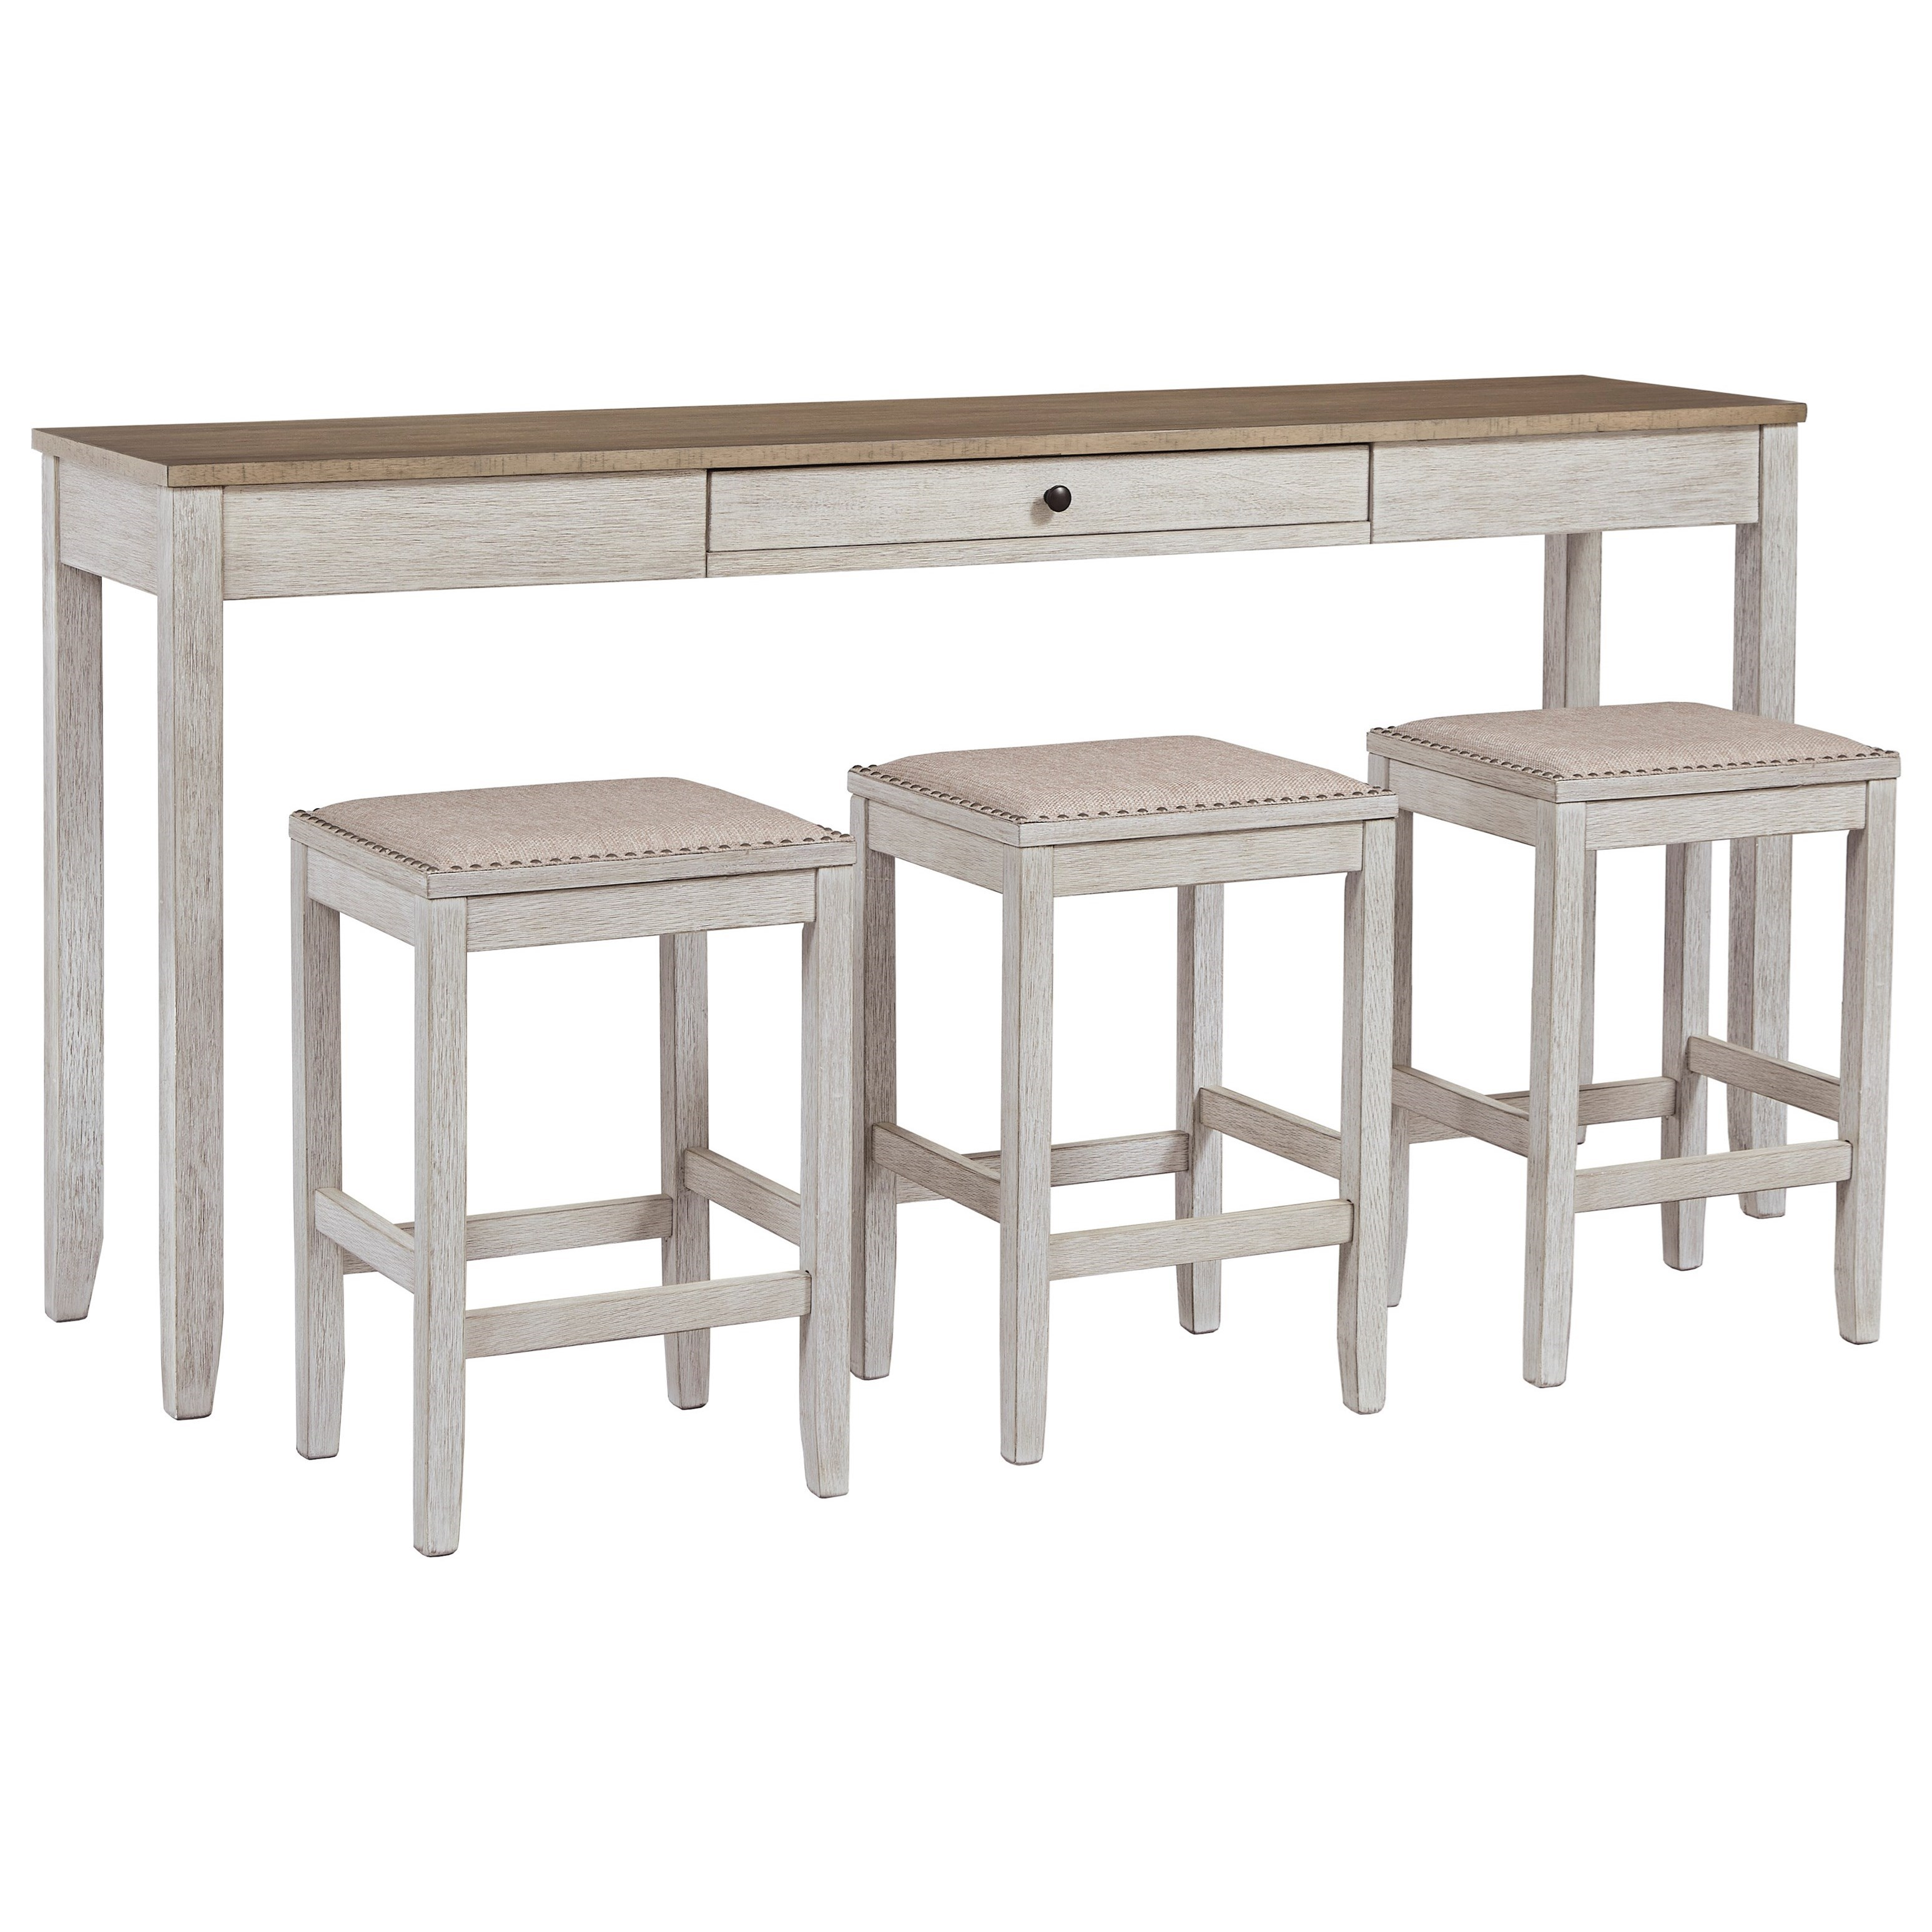 Signature Design By Ashley Skempton Two Tone 4 Piece Rect Dining Room Counter Table Set With Drawer Royal Furniture Pub Table And Stool Sets